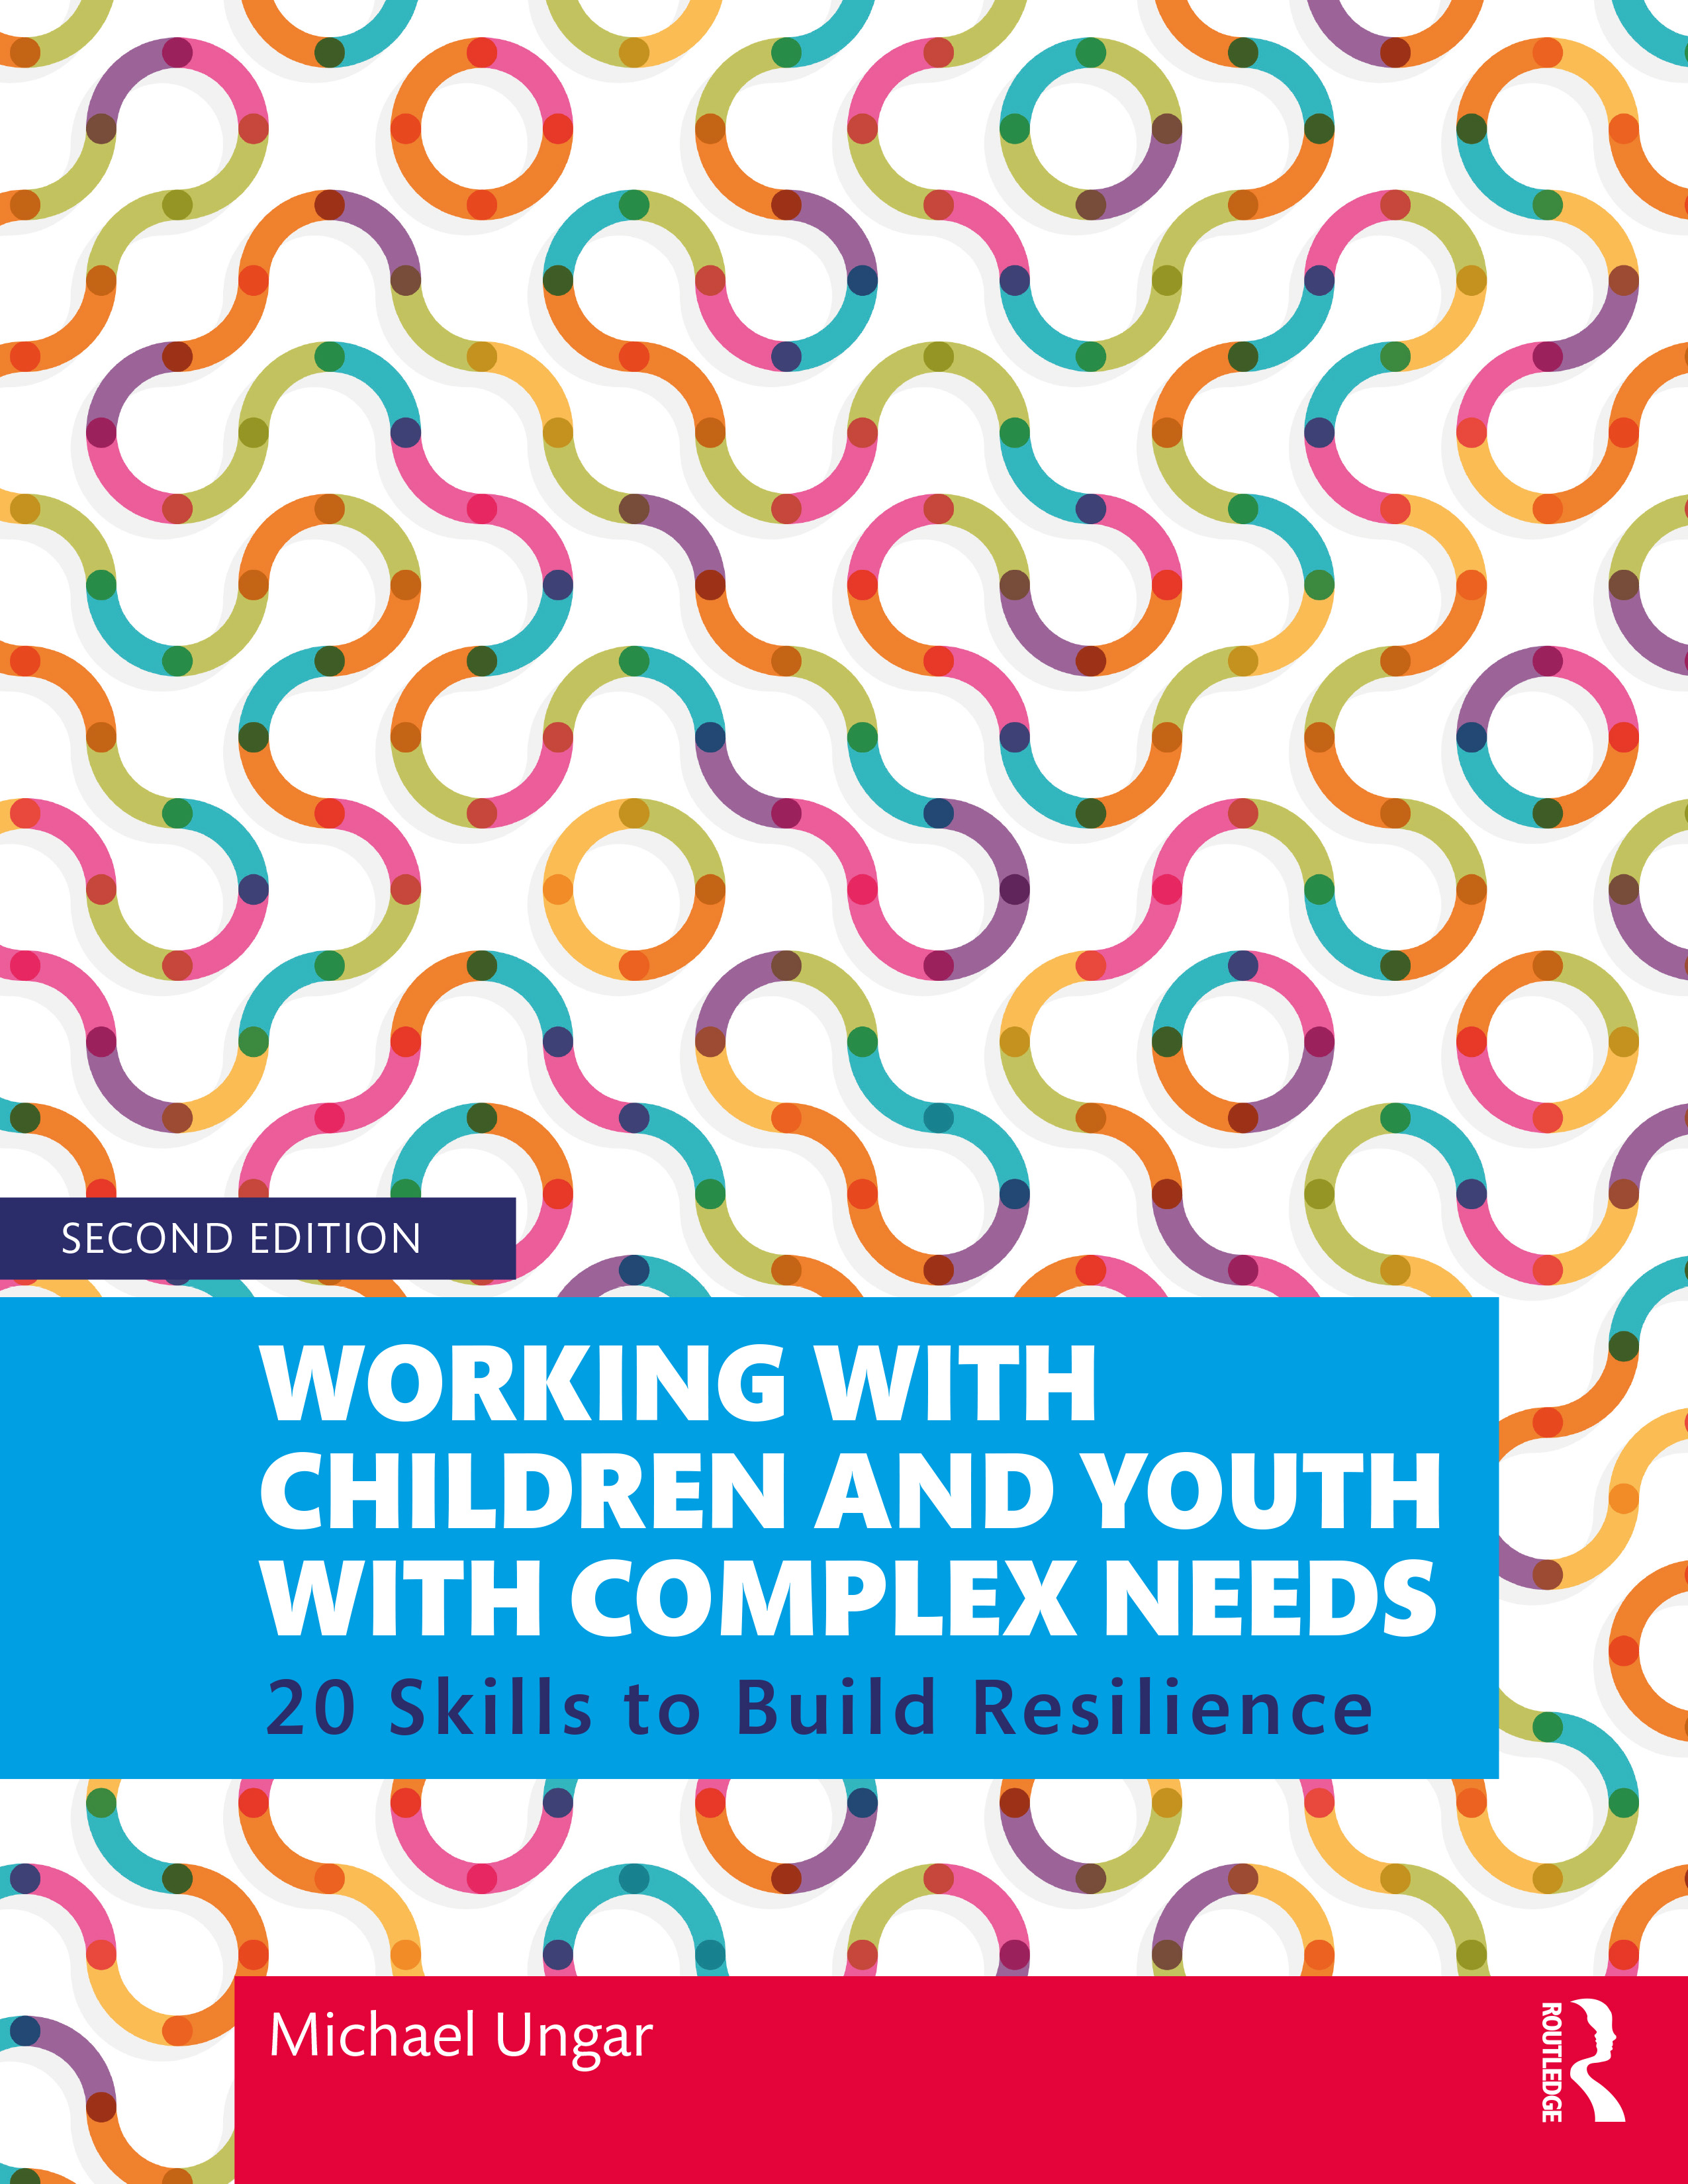 Working with Children and Youth with Complex Needs: 20 Skills to Build Resilience book cover